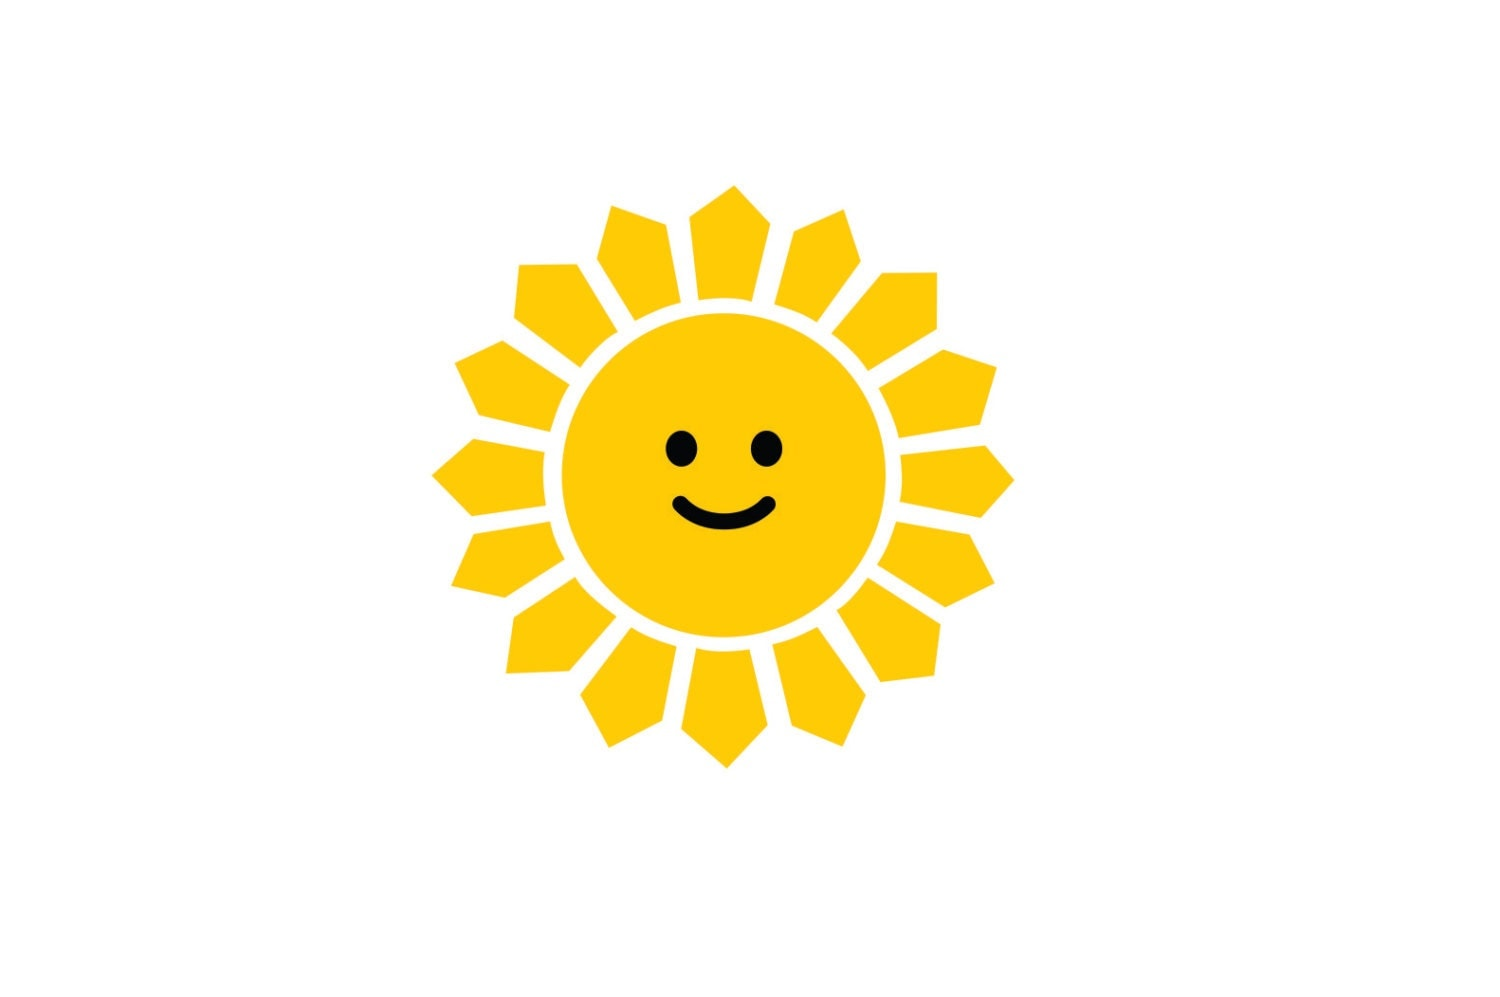 Smiling sun images - Details Sun Wall Decal